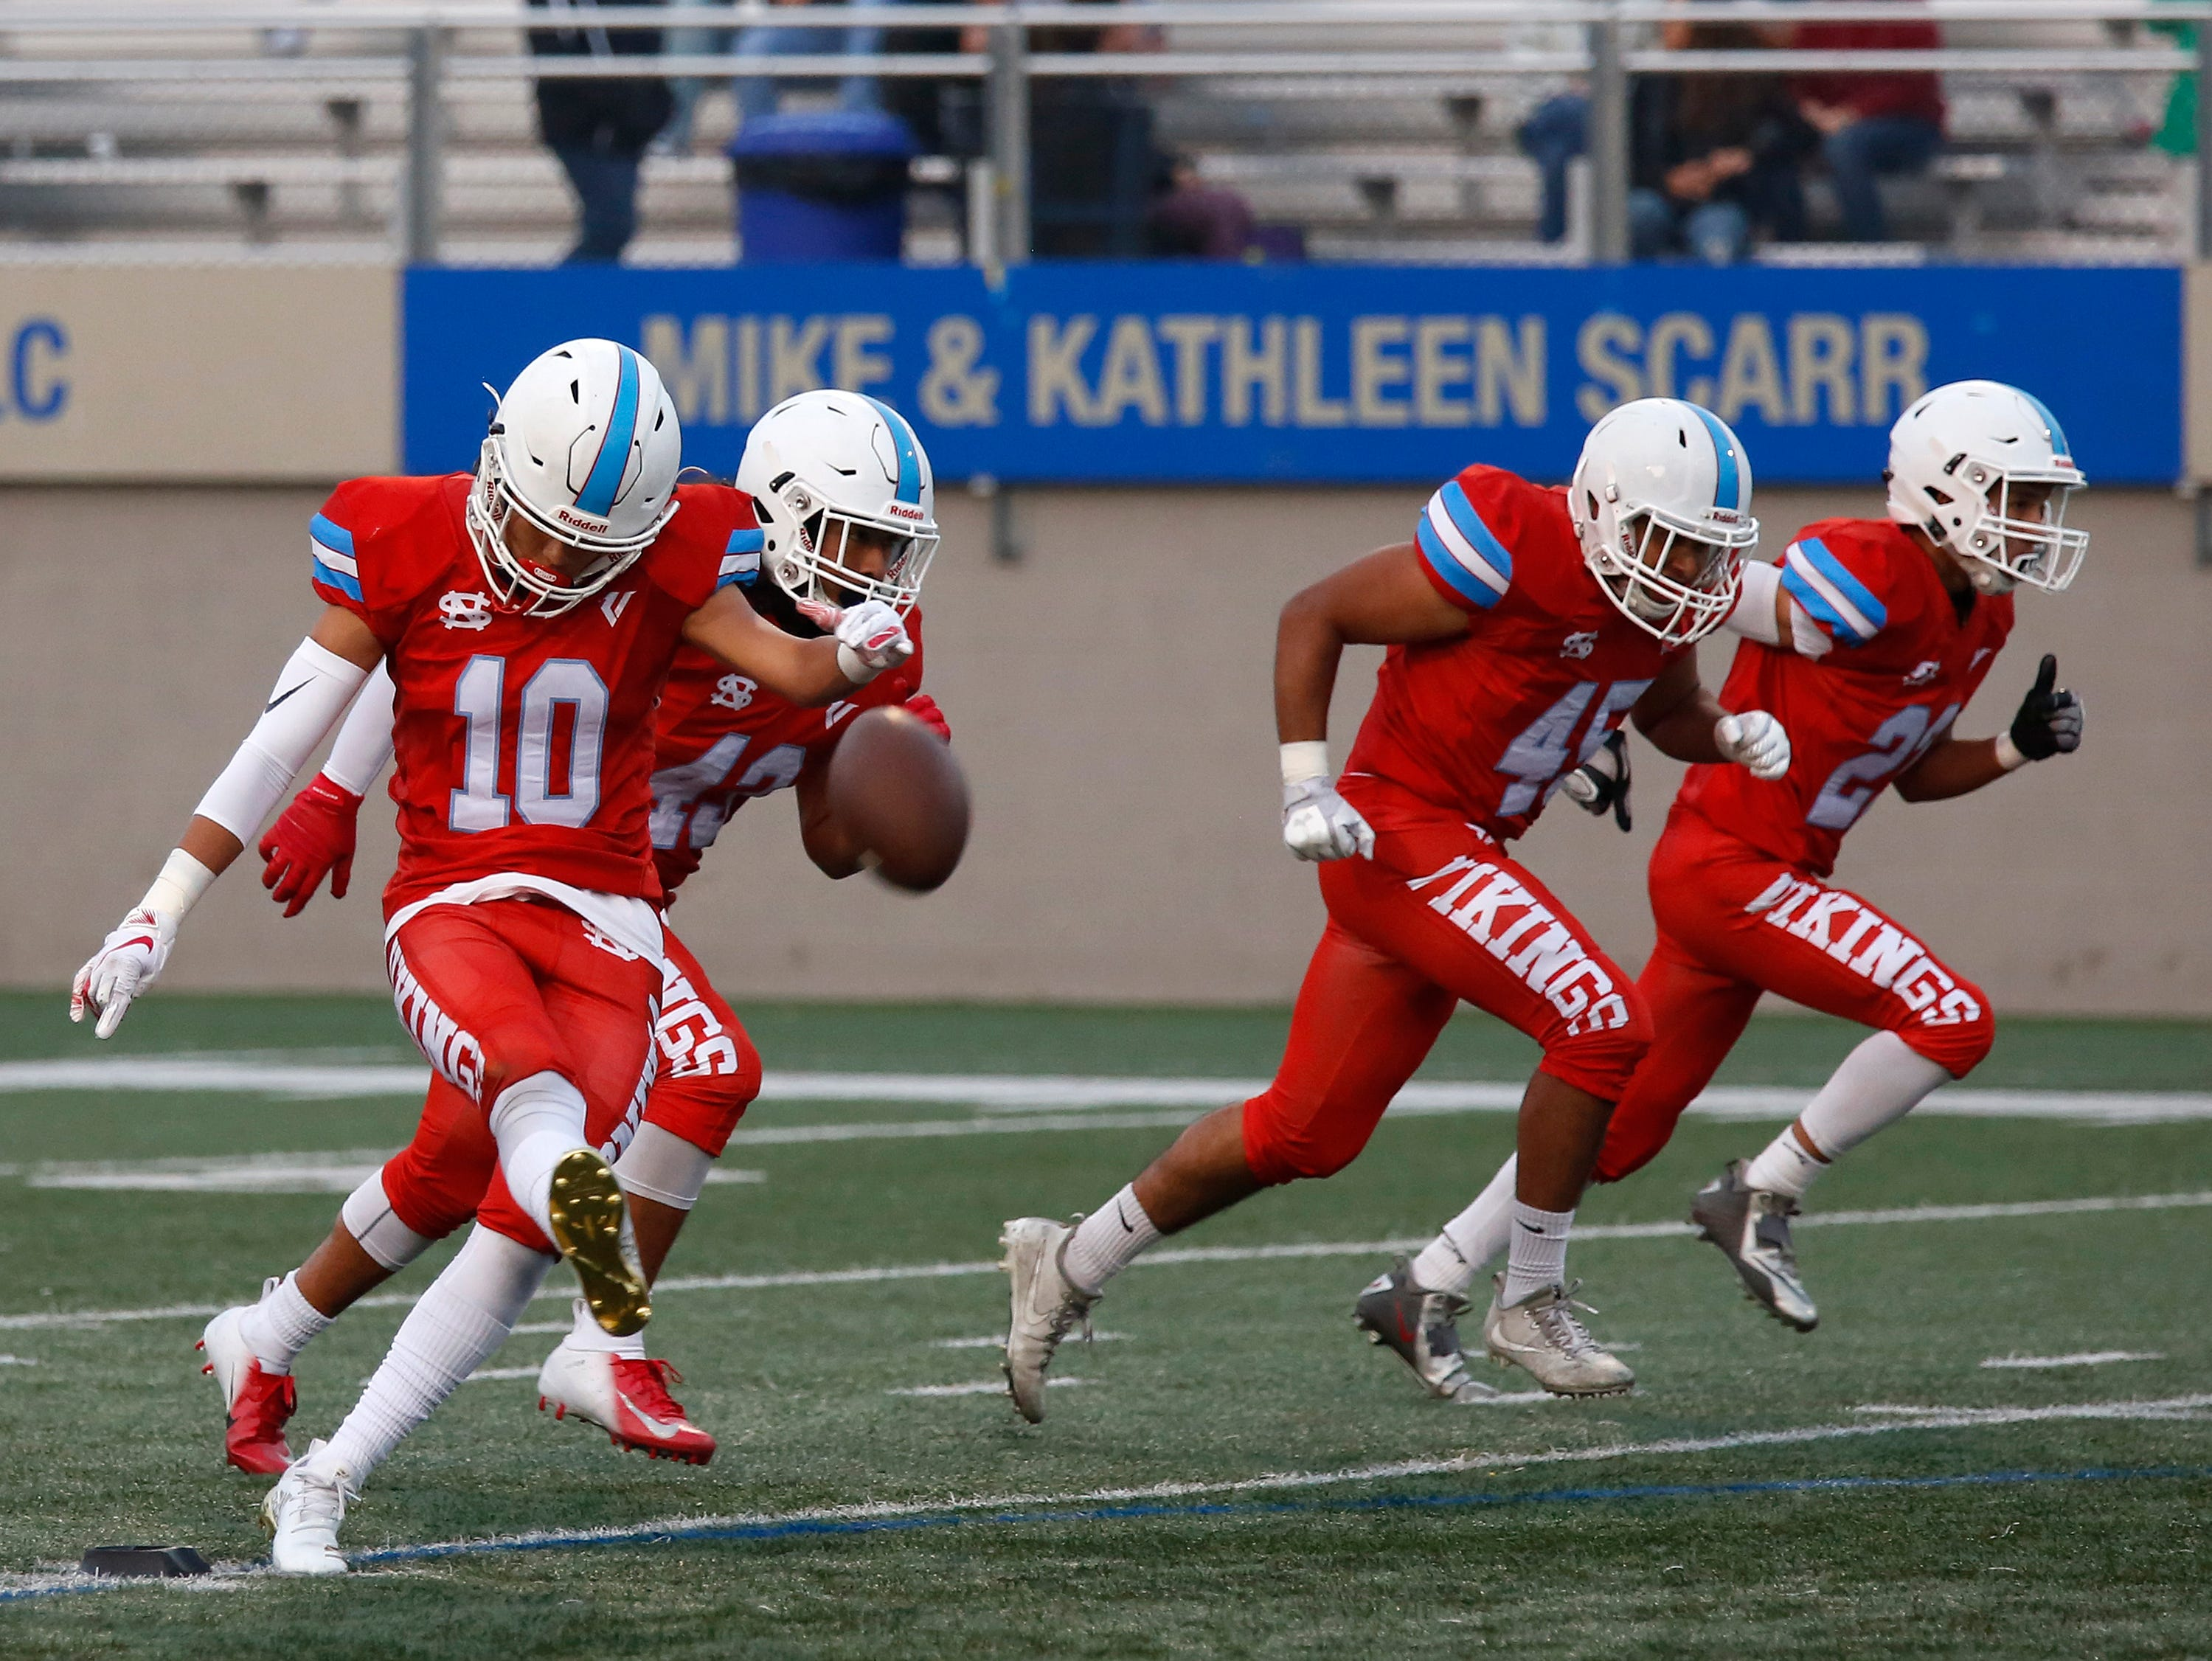 North Salinas's Brandon Guzman kicks off against North Monterey County during football at Rabobank Stadium in Salinas on Thursday August 23, 2018.